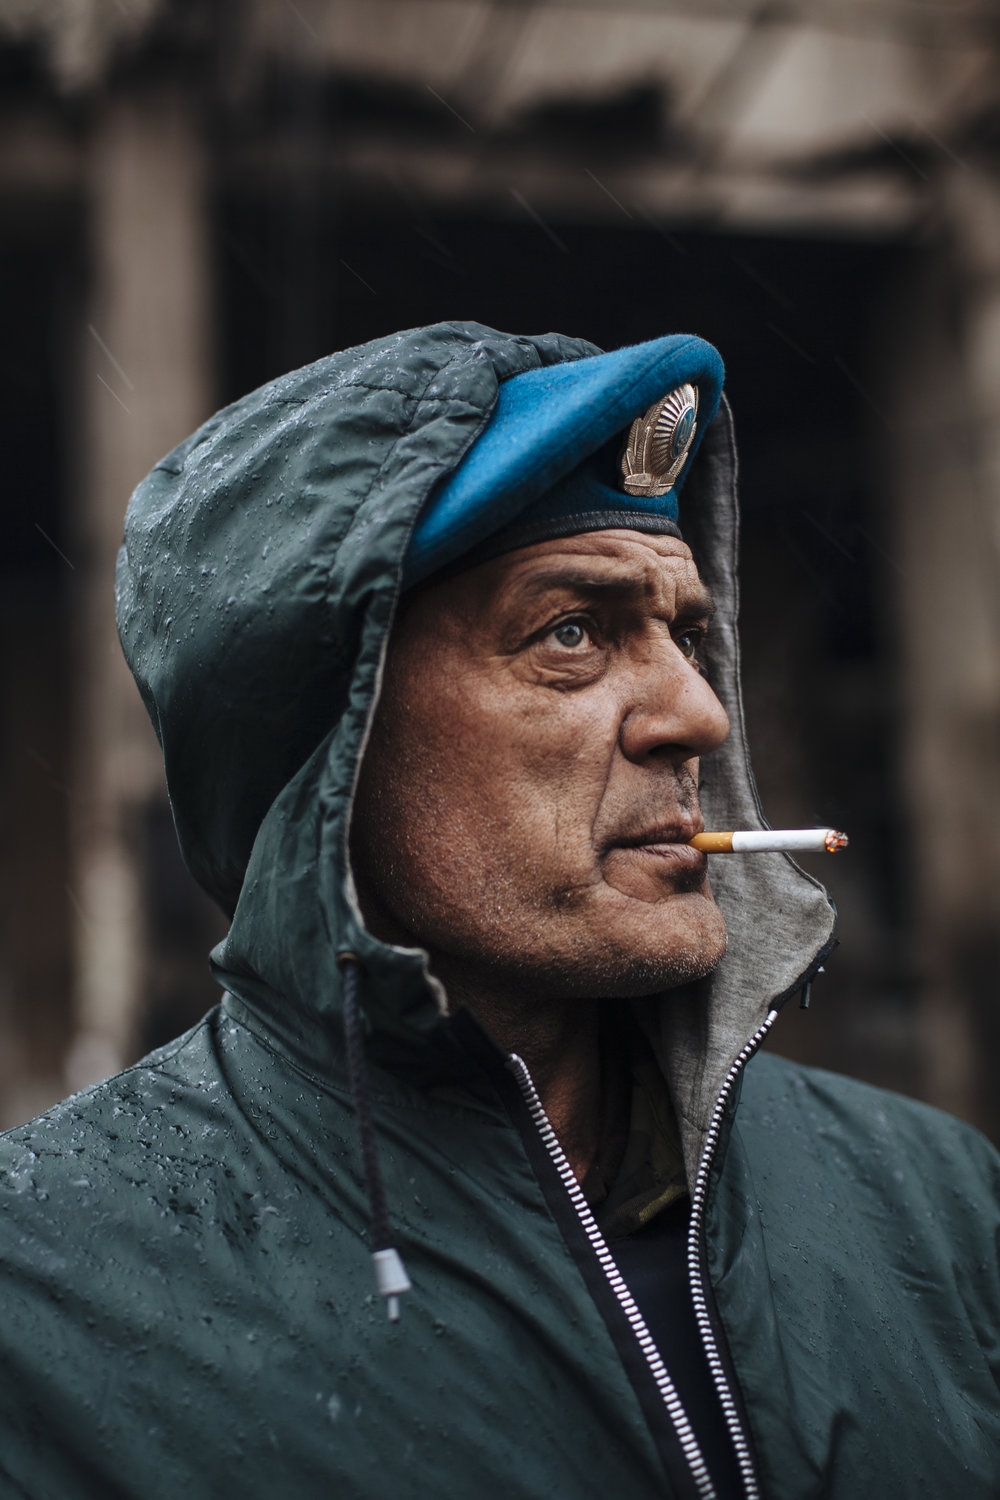 Dima, a member of a volunteer self defense group, smokes a cigarette during a rainfall in Kiev's Independence Square, Ukraine, Sunday, March 16, 2014. (AP Photo/David Azia)